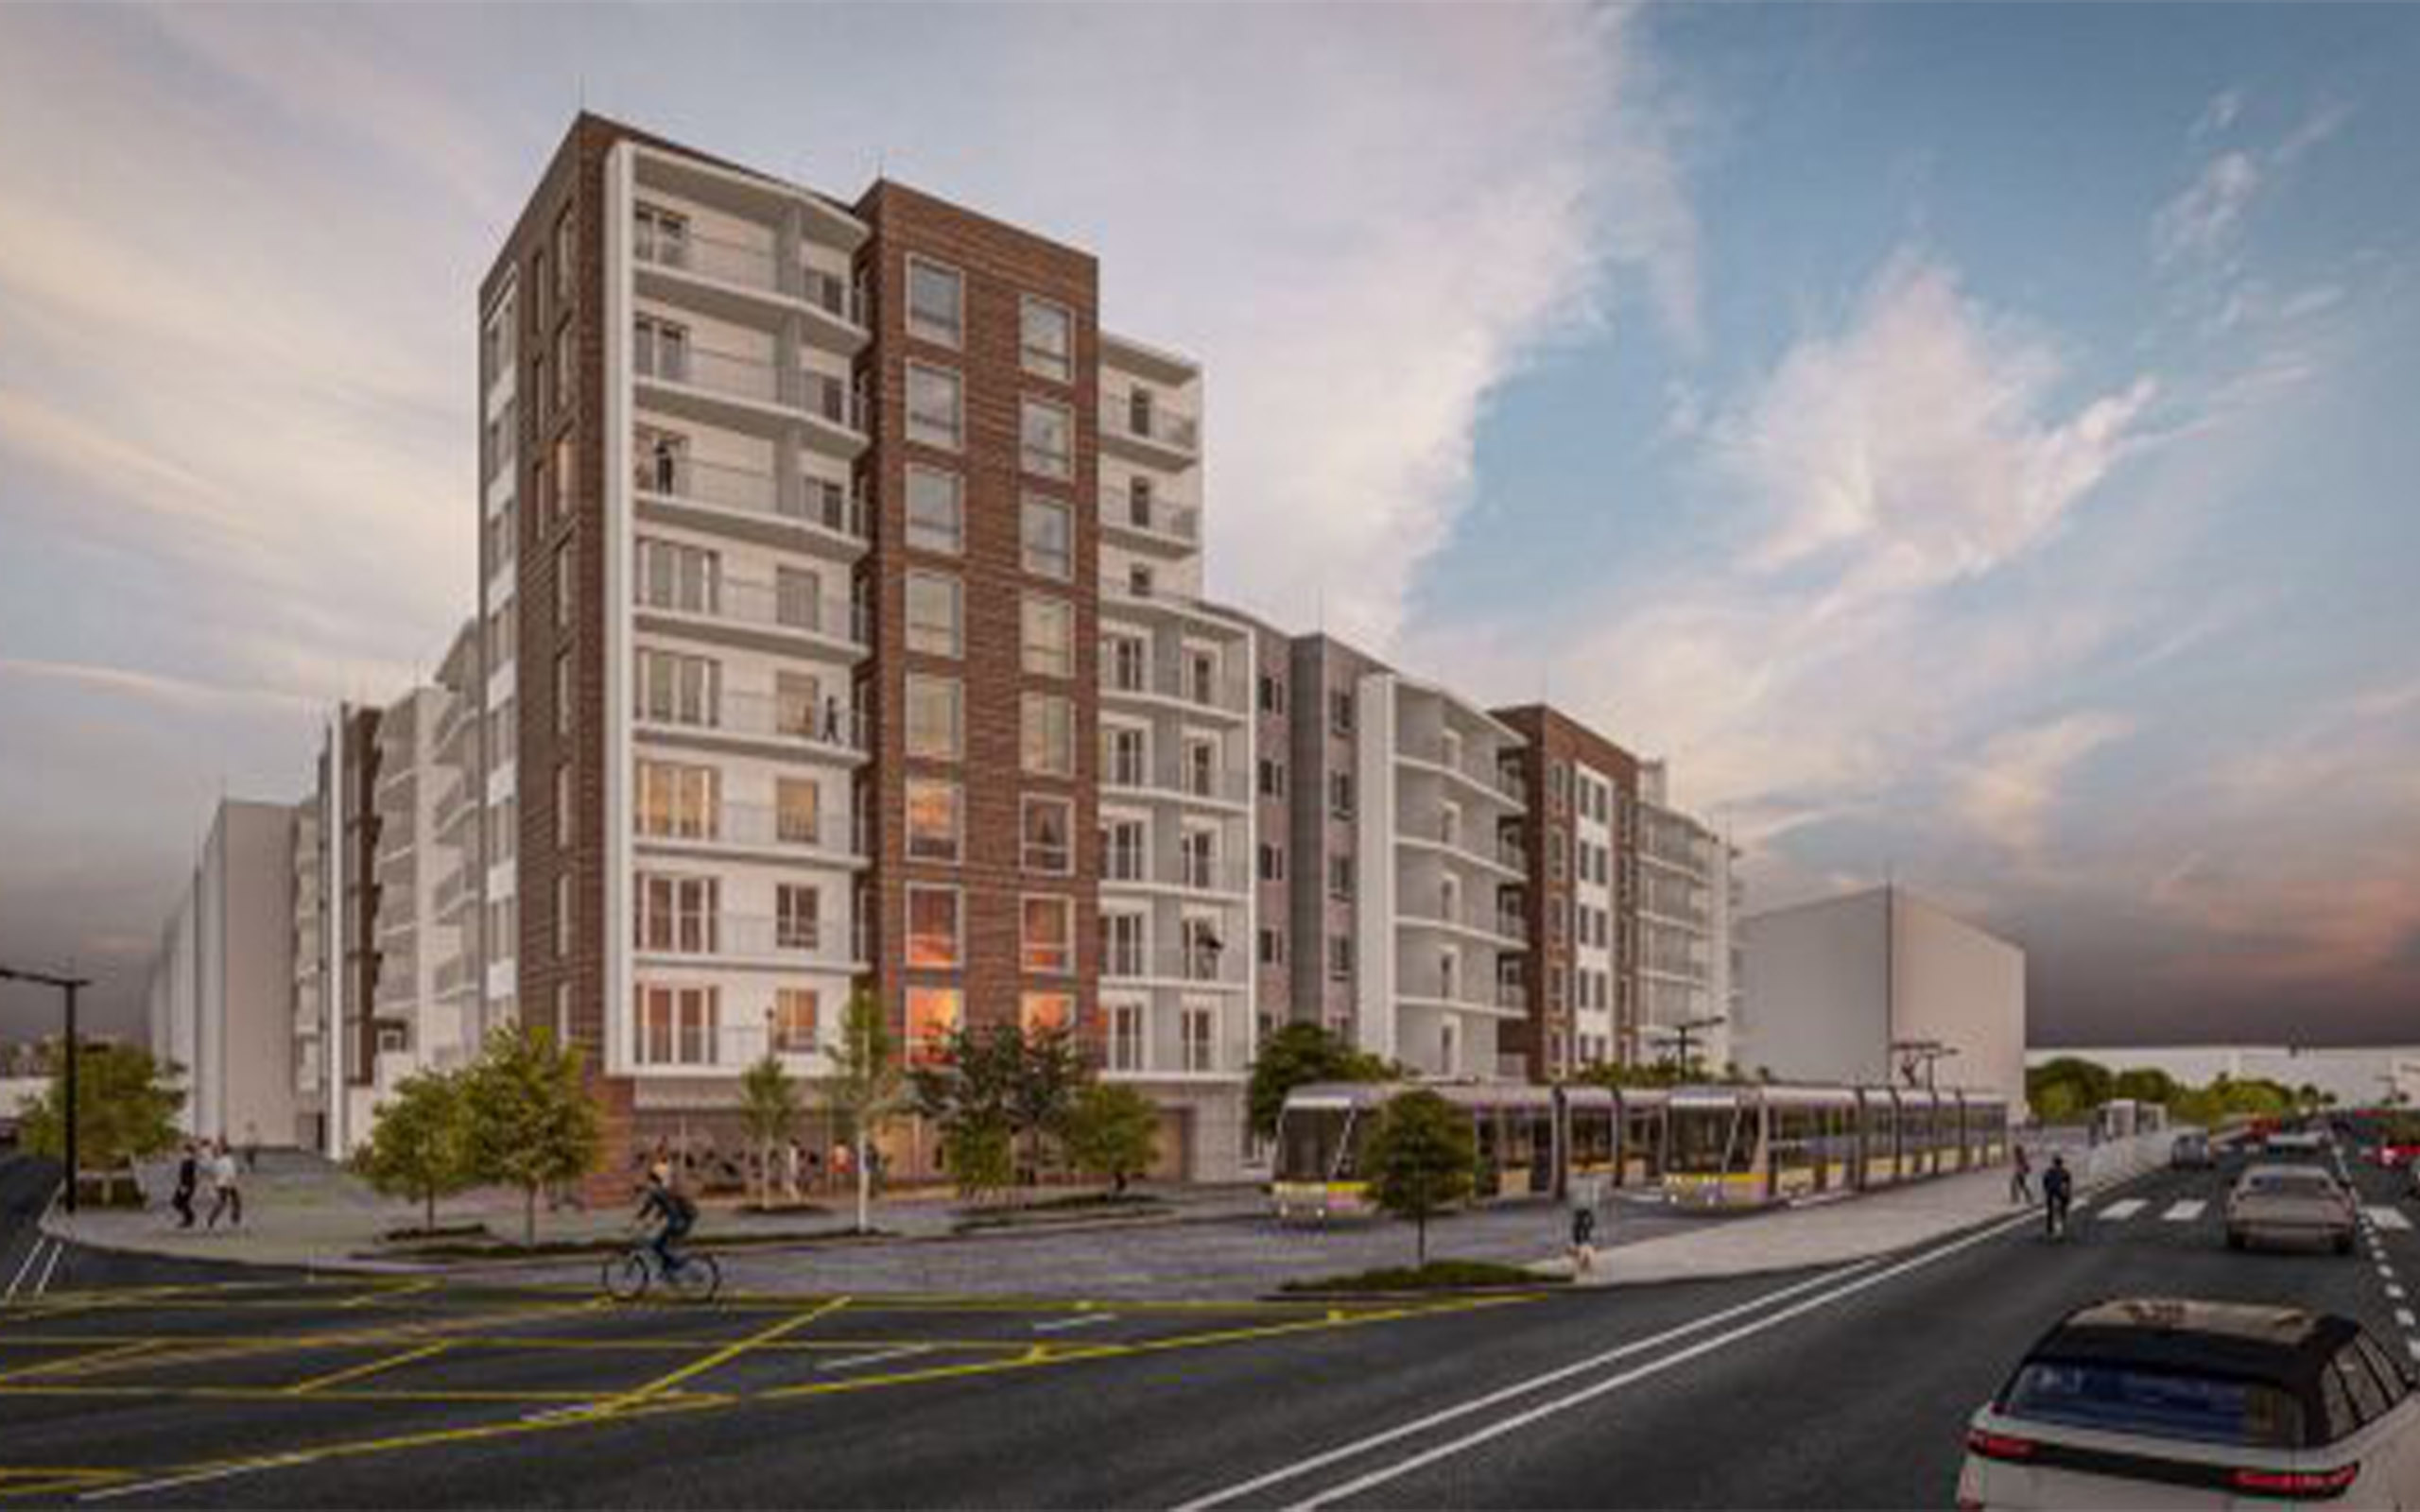 196-Units-at-The-Avenue-Cookstown-Crescent-Tallaght.-Image-Credit-CW-O'Brien-Architects.